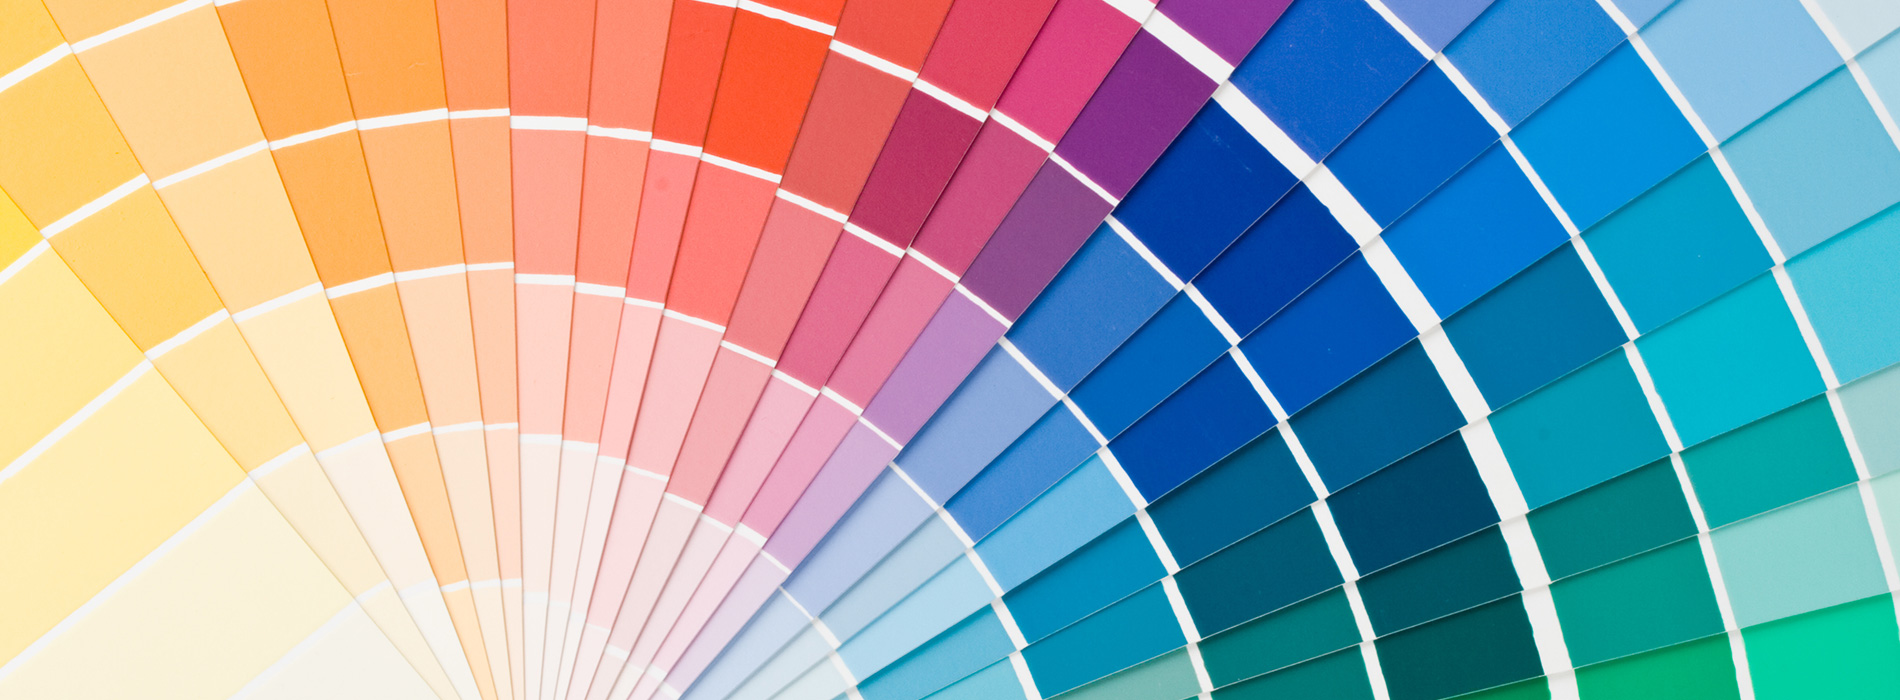 label-products-custom-labels-hybrid-labels-rainbow-swatches-colors-pantone-pms-dls